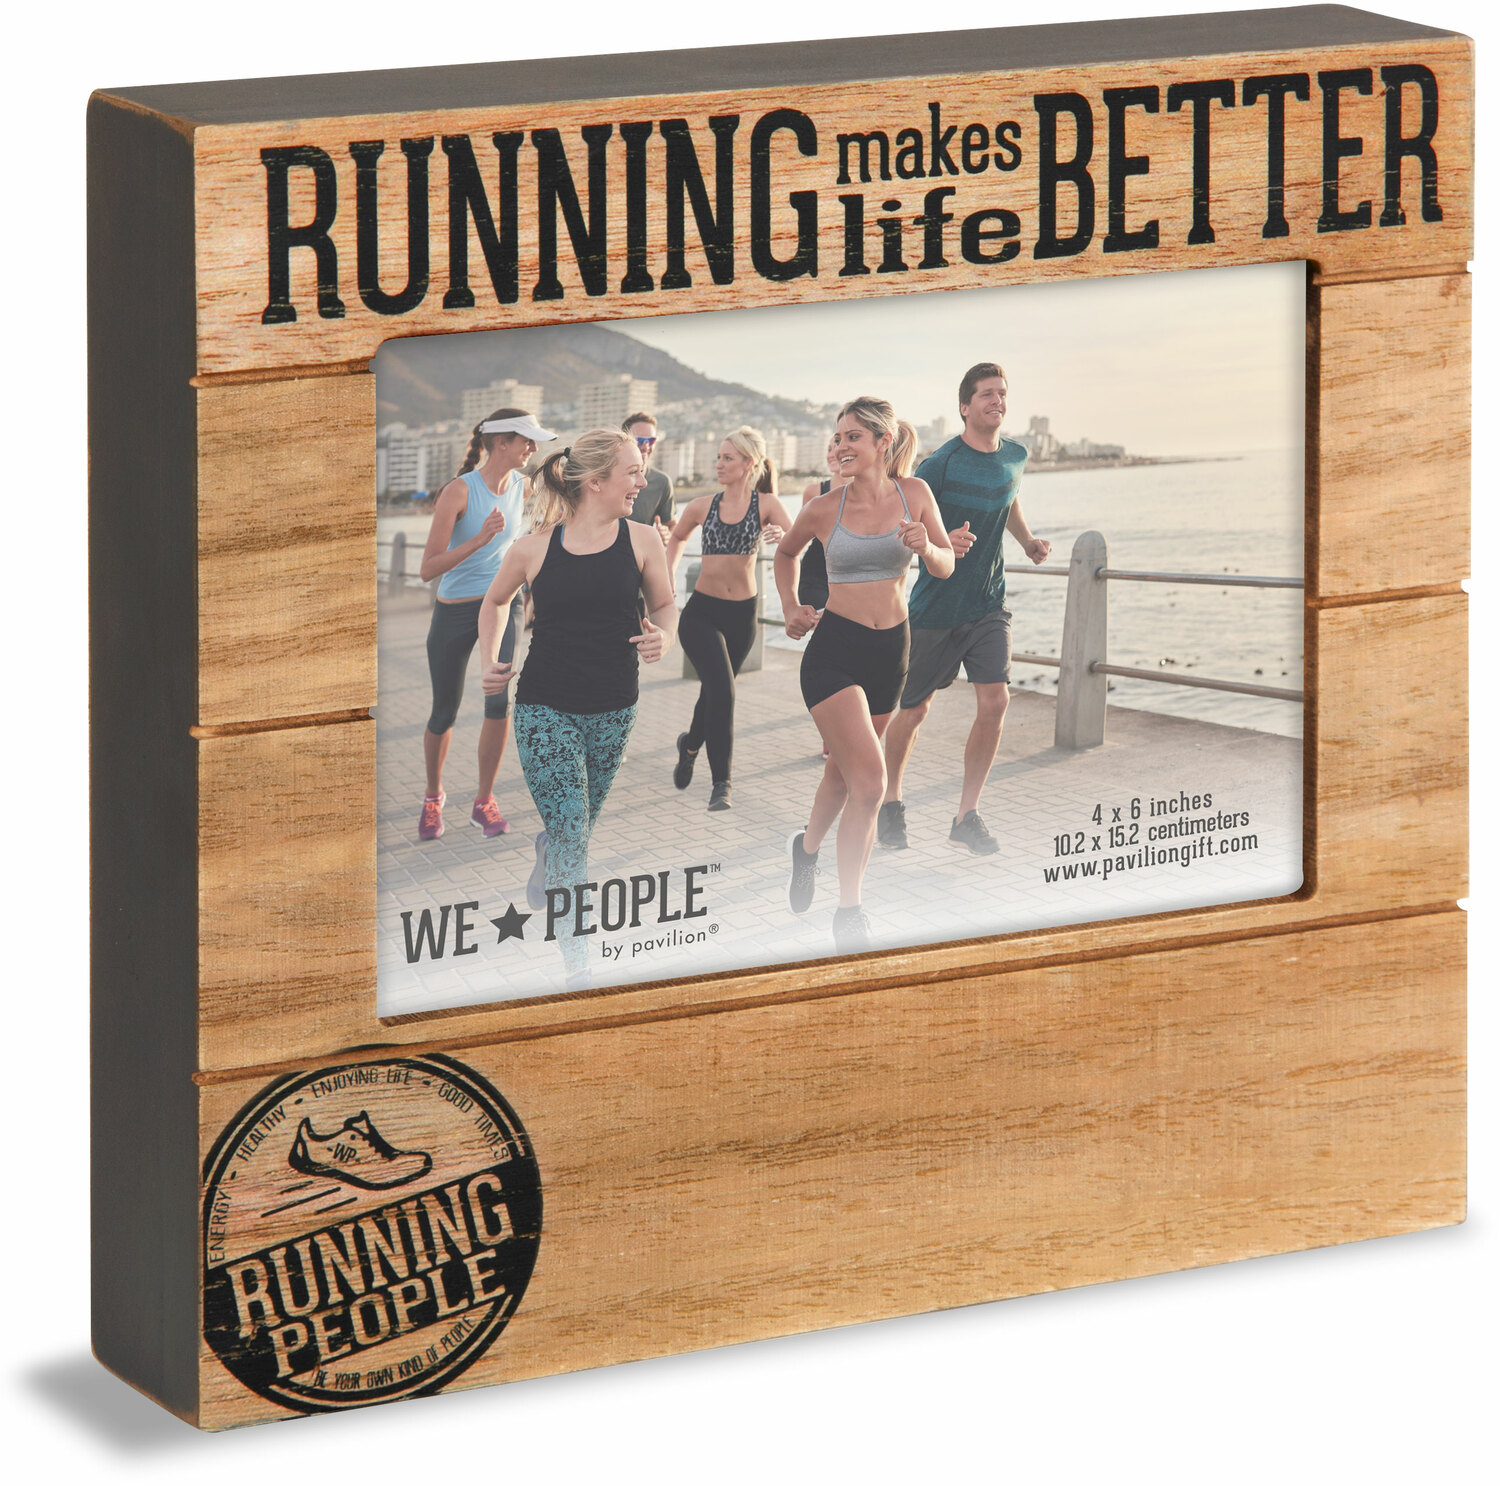 "Running People by We People - Running People - 6.75"" x 7.5"" Frame (Holds 4"" x 6"" photo)"